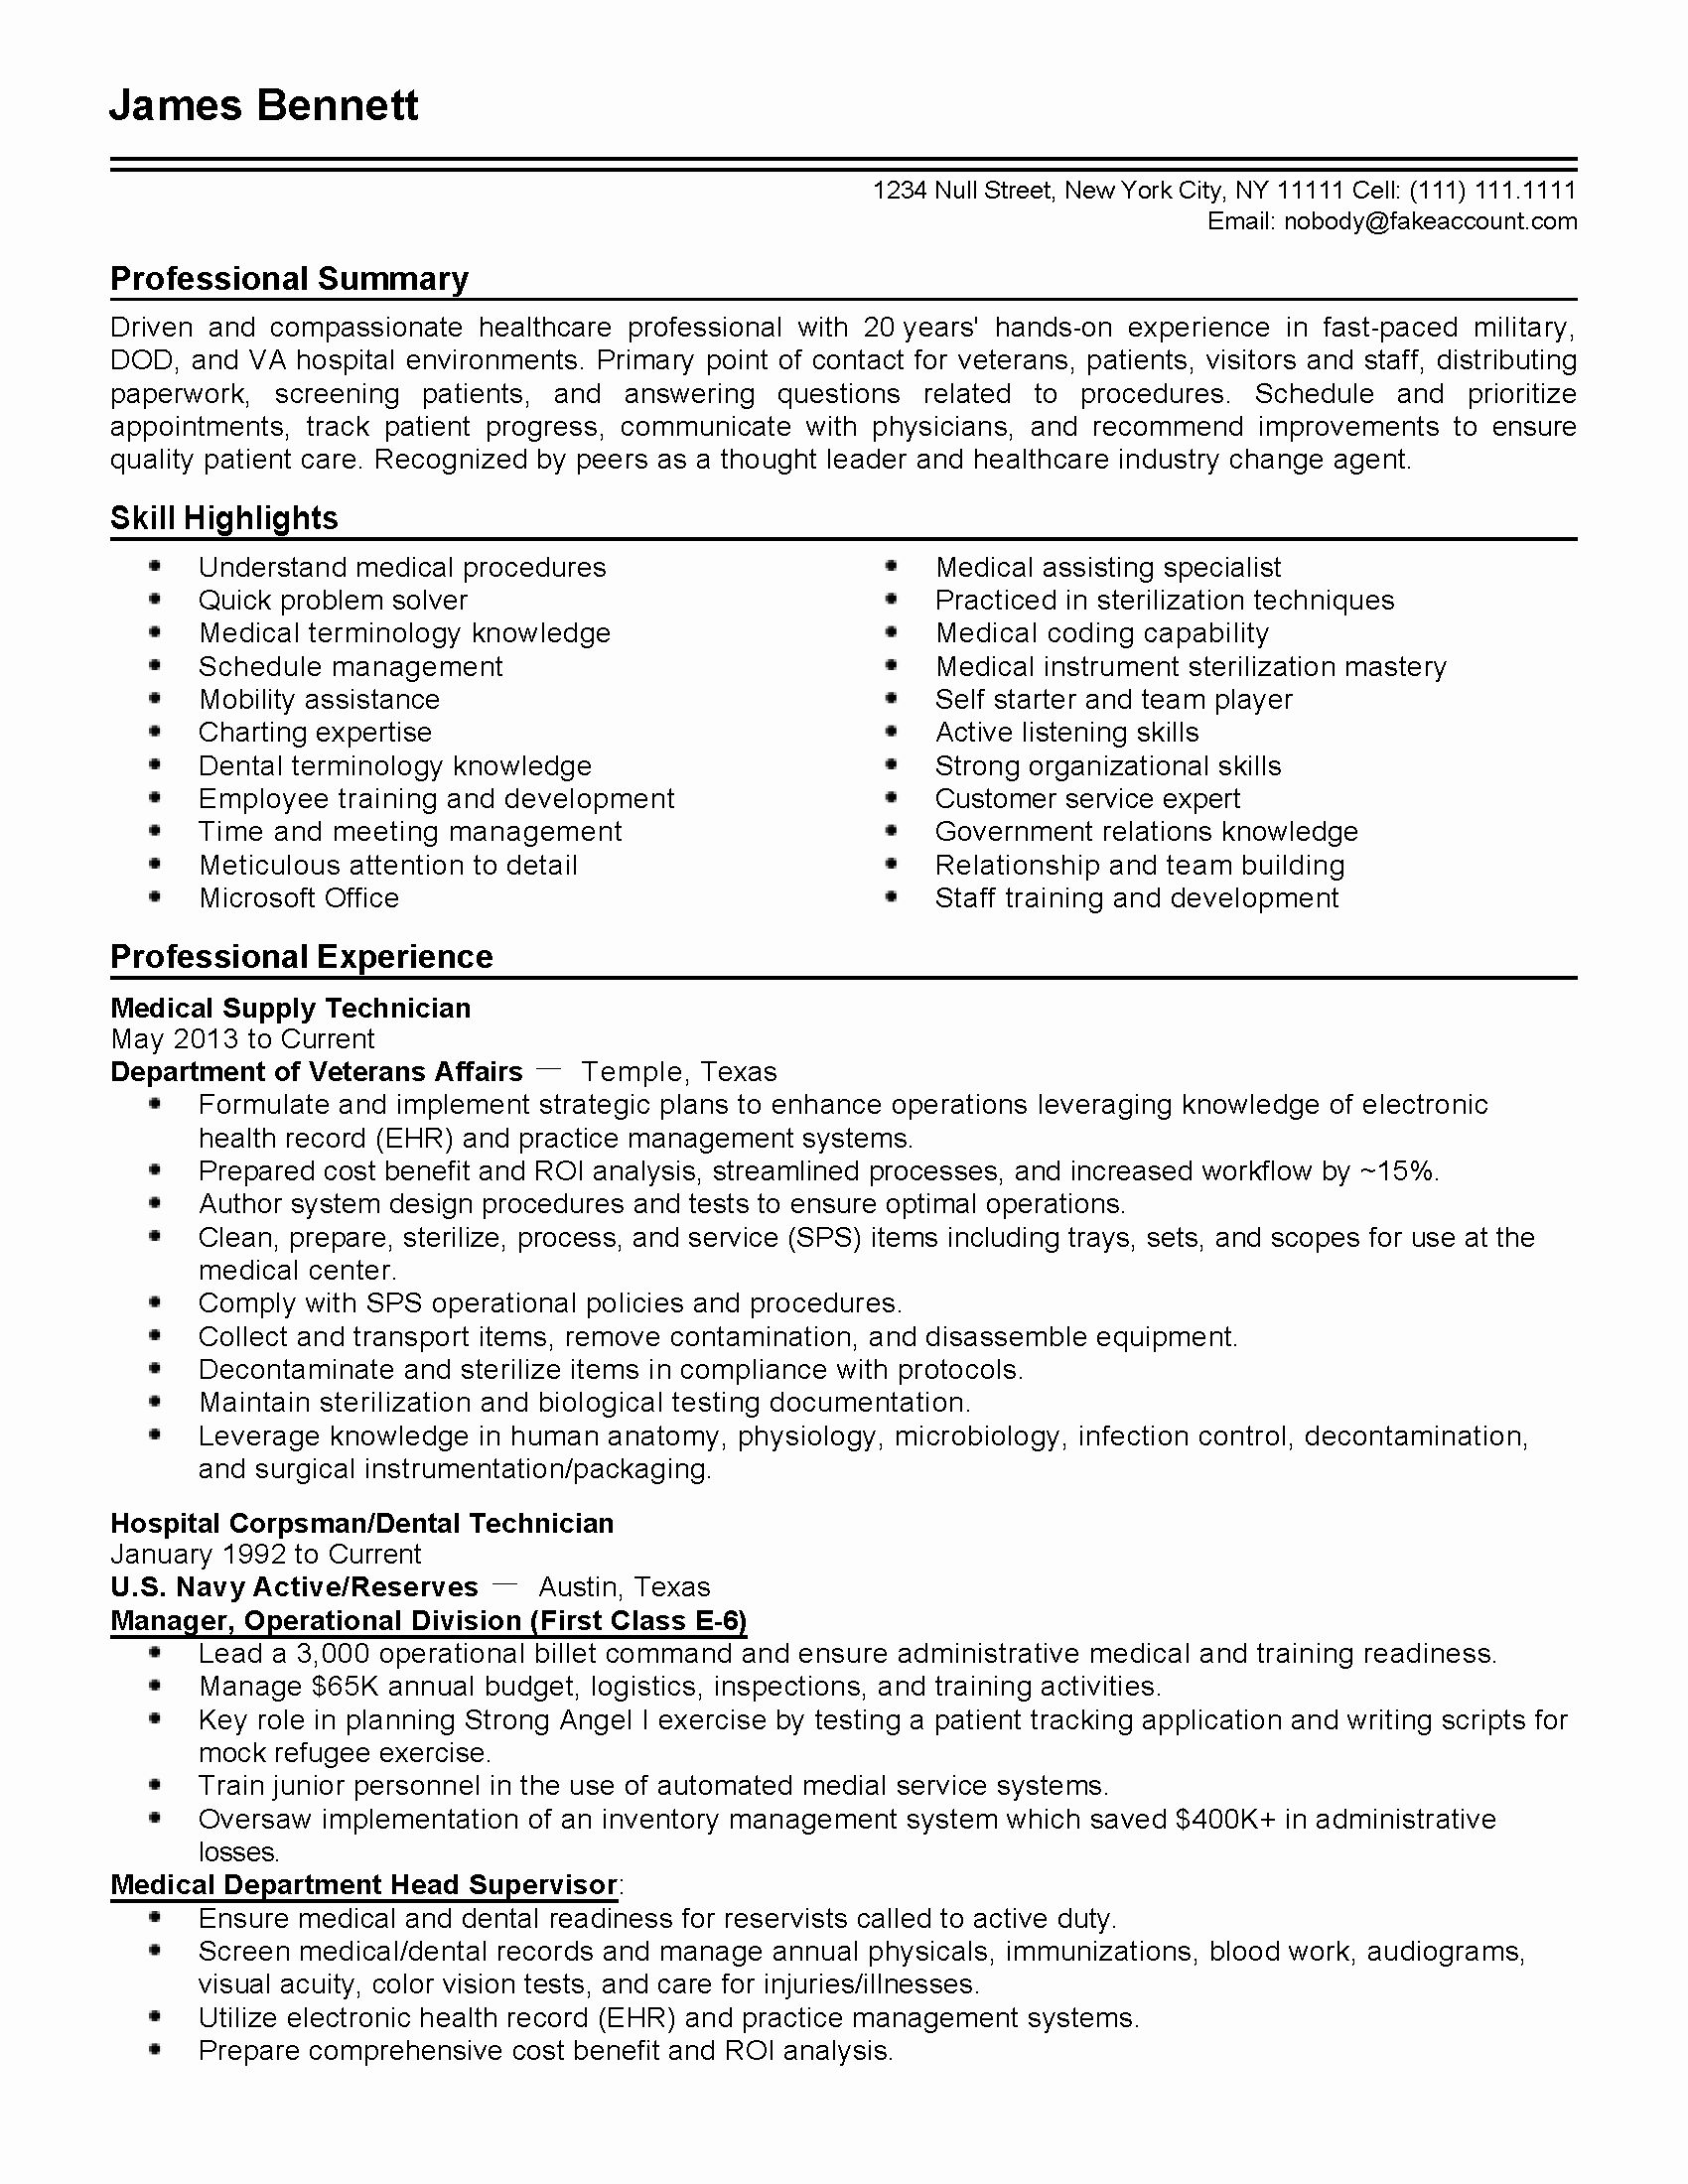 Resume Objectives For Healthcare Lovely Professional Military Healthcare Administrator Templates To Showc Resume Examples Resume Objective Job Interview Advice